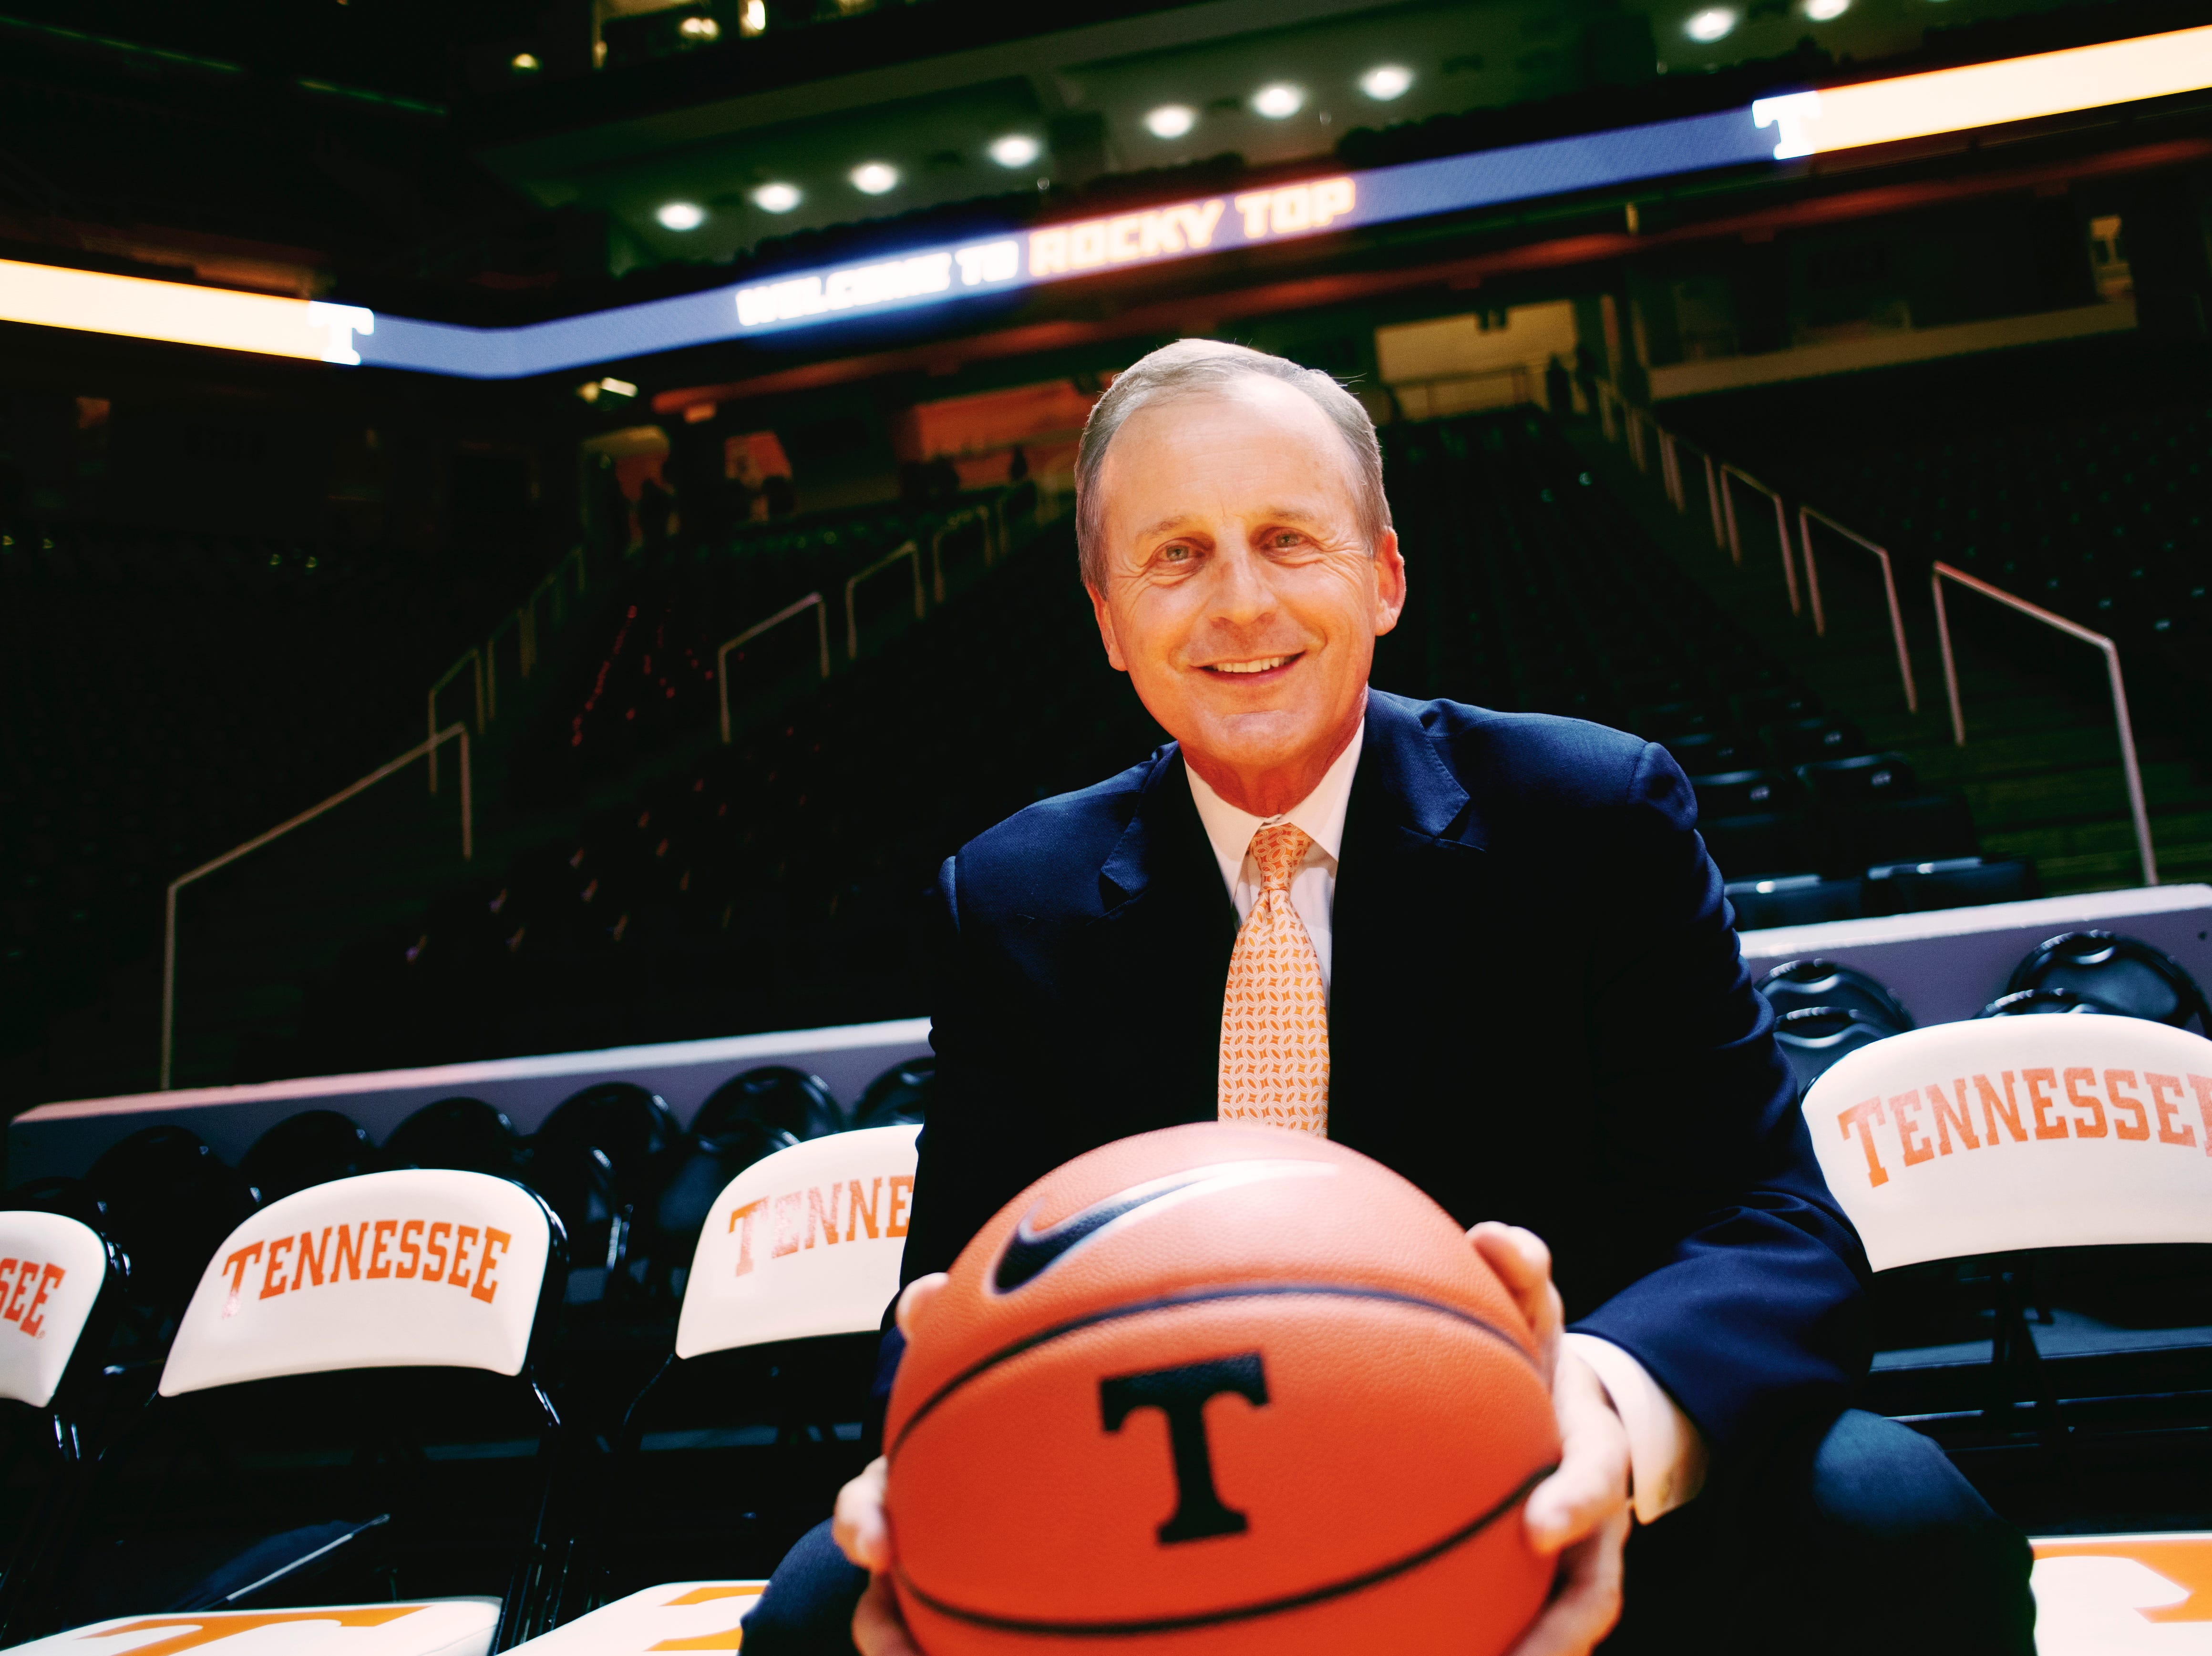 Tennessee Volunteers Basketball Head Coach Rick Barnes is the News Sentinel Sportsperson of the Year.